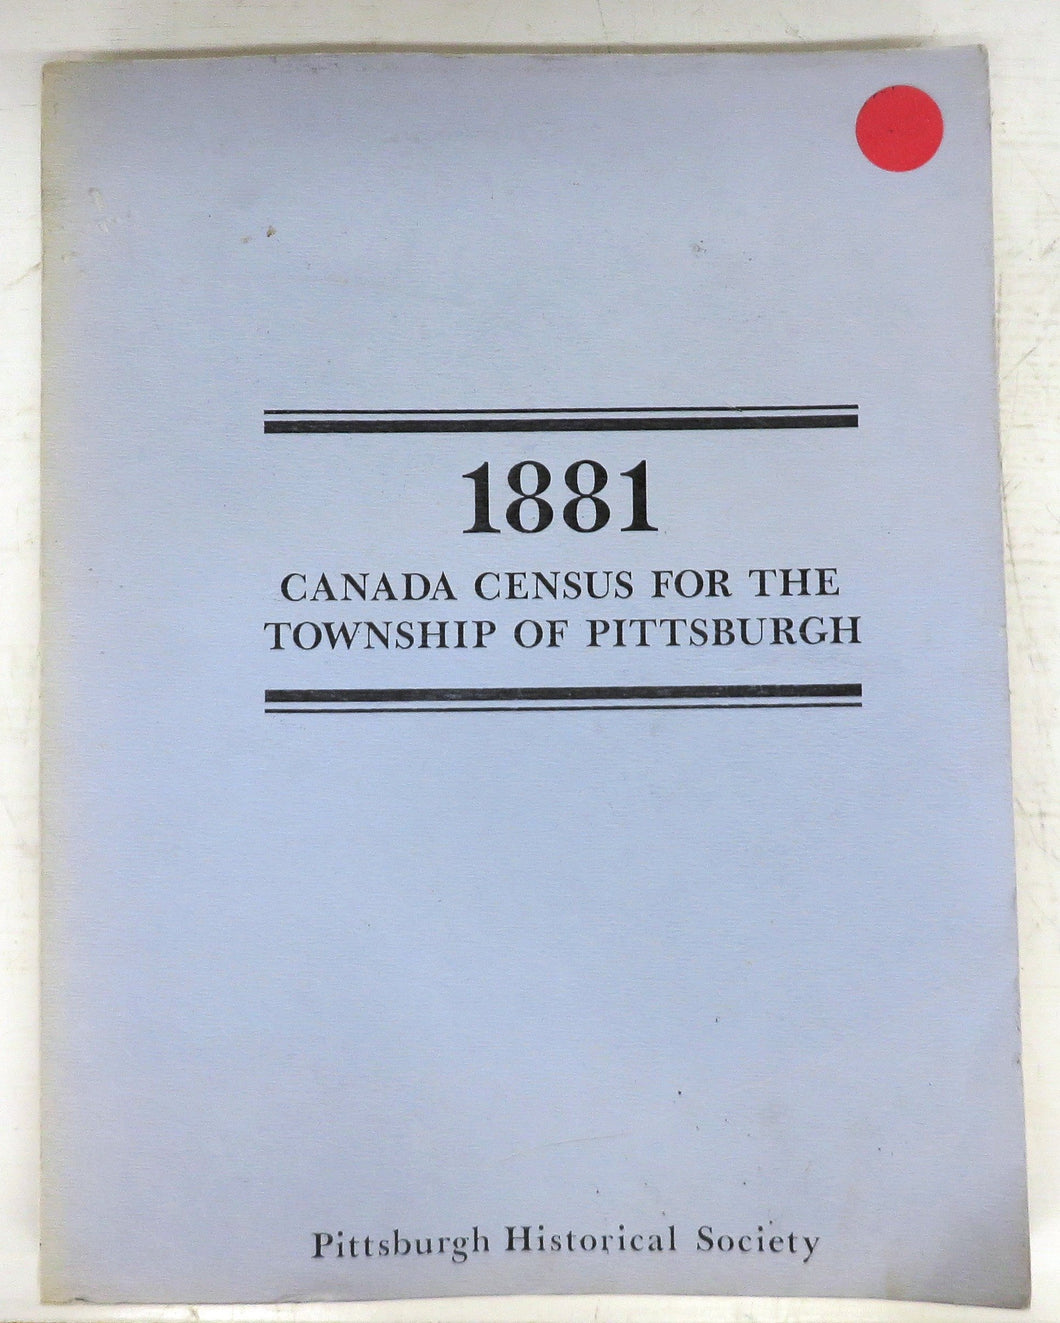 1881 Canada Census for the Township of Pittsburgh